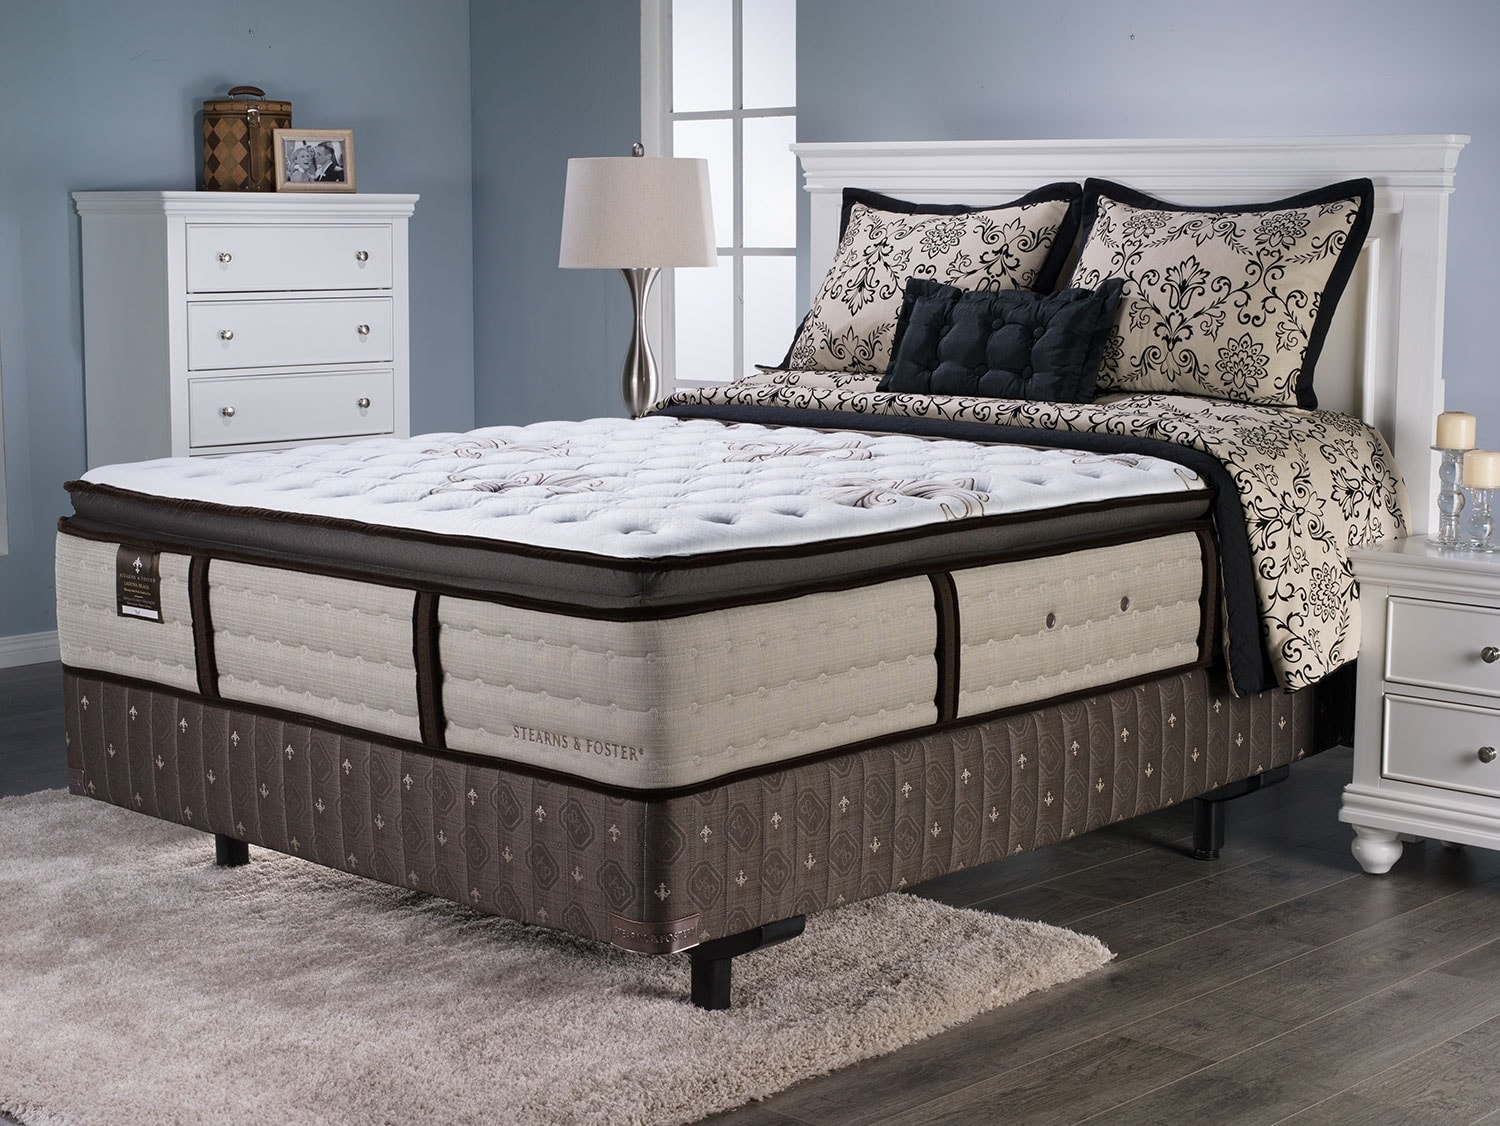 Mattresses and Bedding - Stearns and Foster Laguna Beach Pillow-Top King Mattress Set